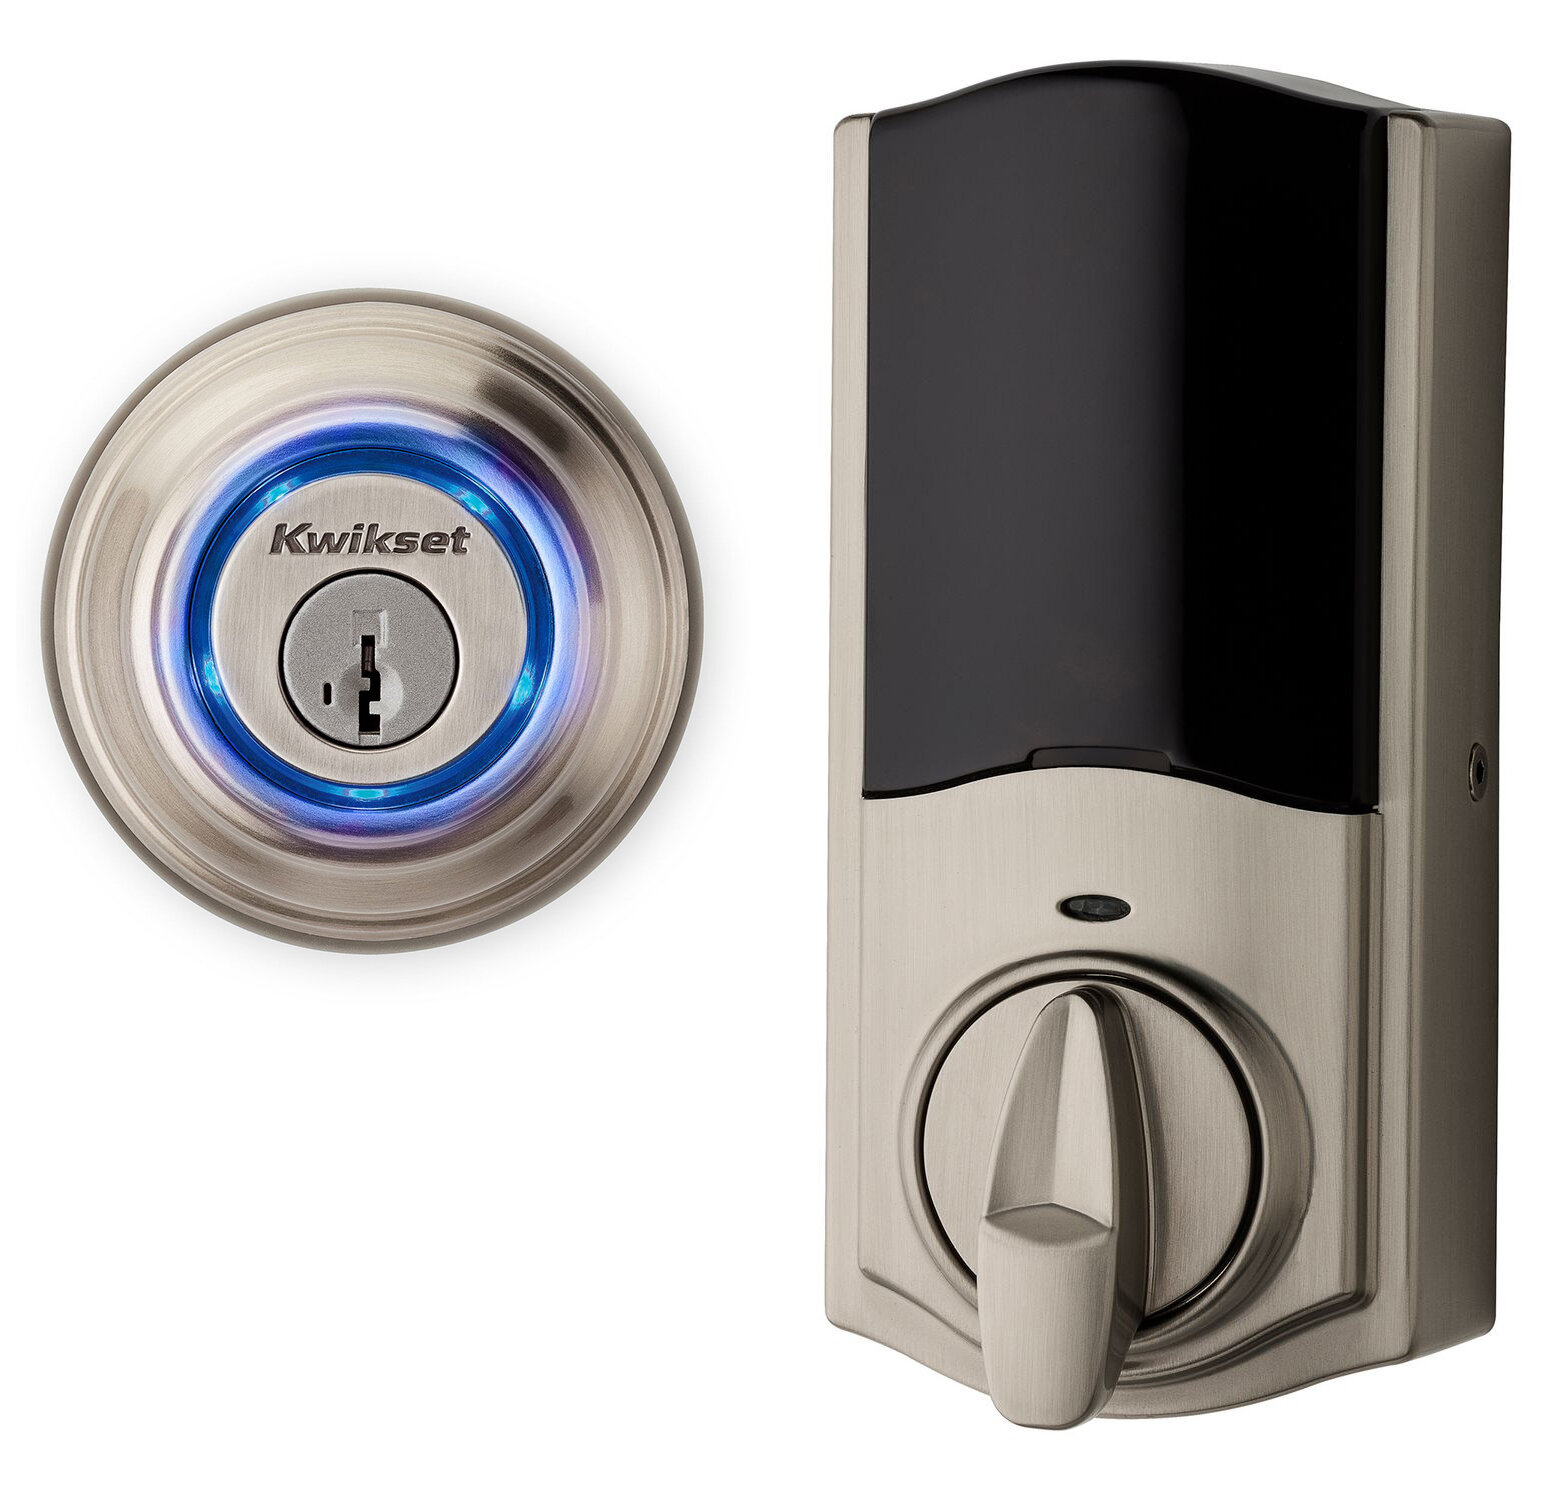 Kwikset 2nd Gen Touch To Open Single Cylinder Smart Deadbolt With Bluetooth Capability And Smartkey Wayfair